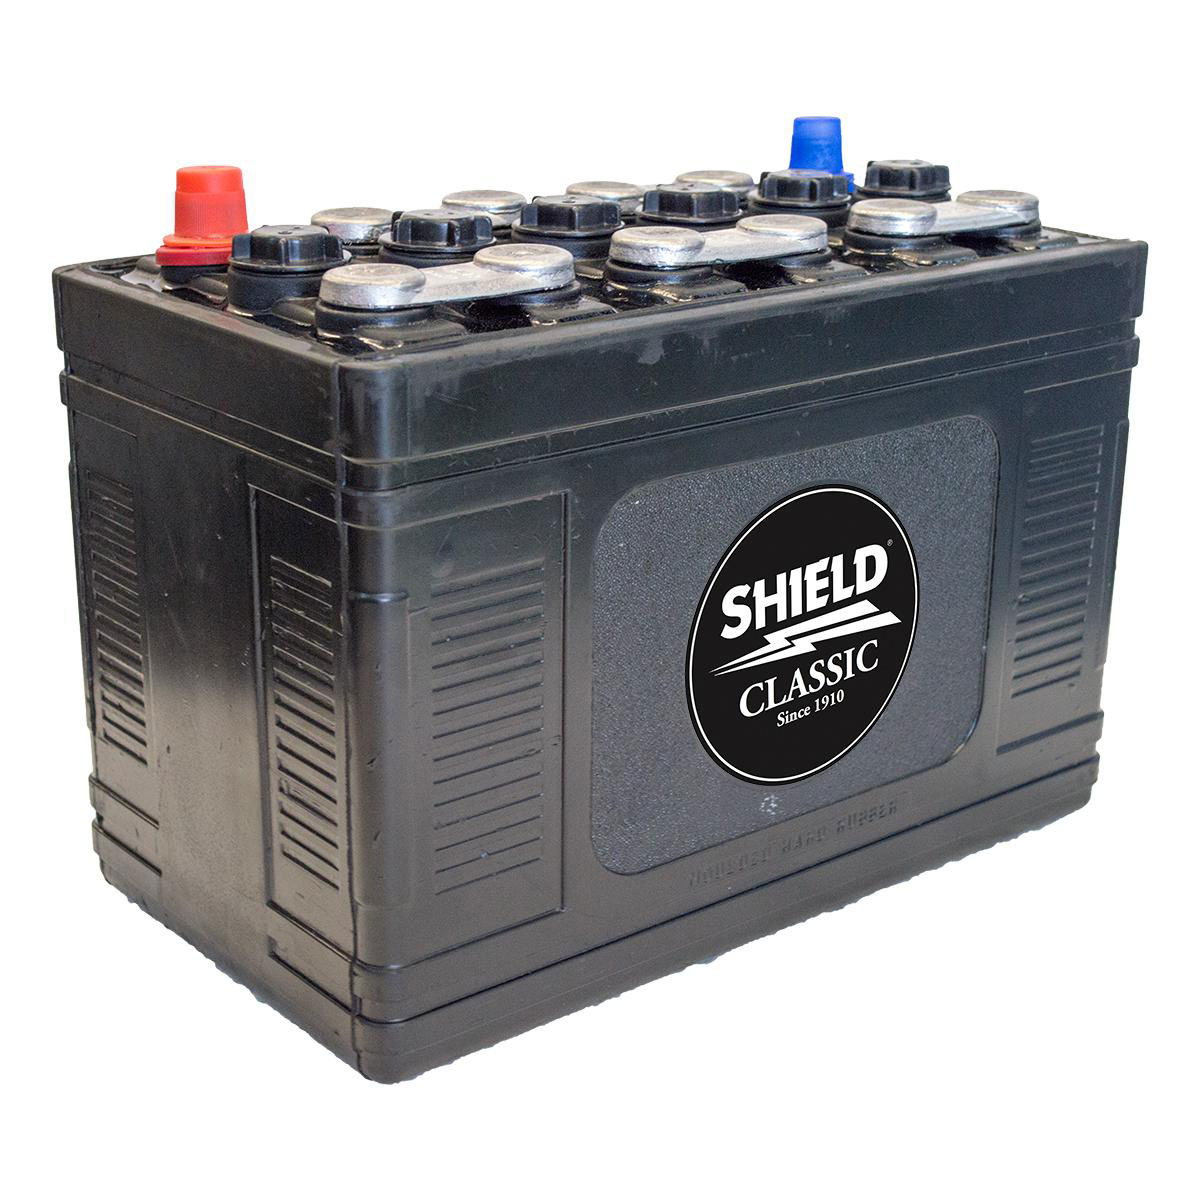 Shield-241-12v-Classic-Car-Battery.jpg